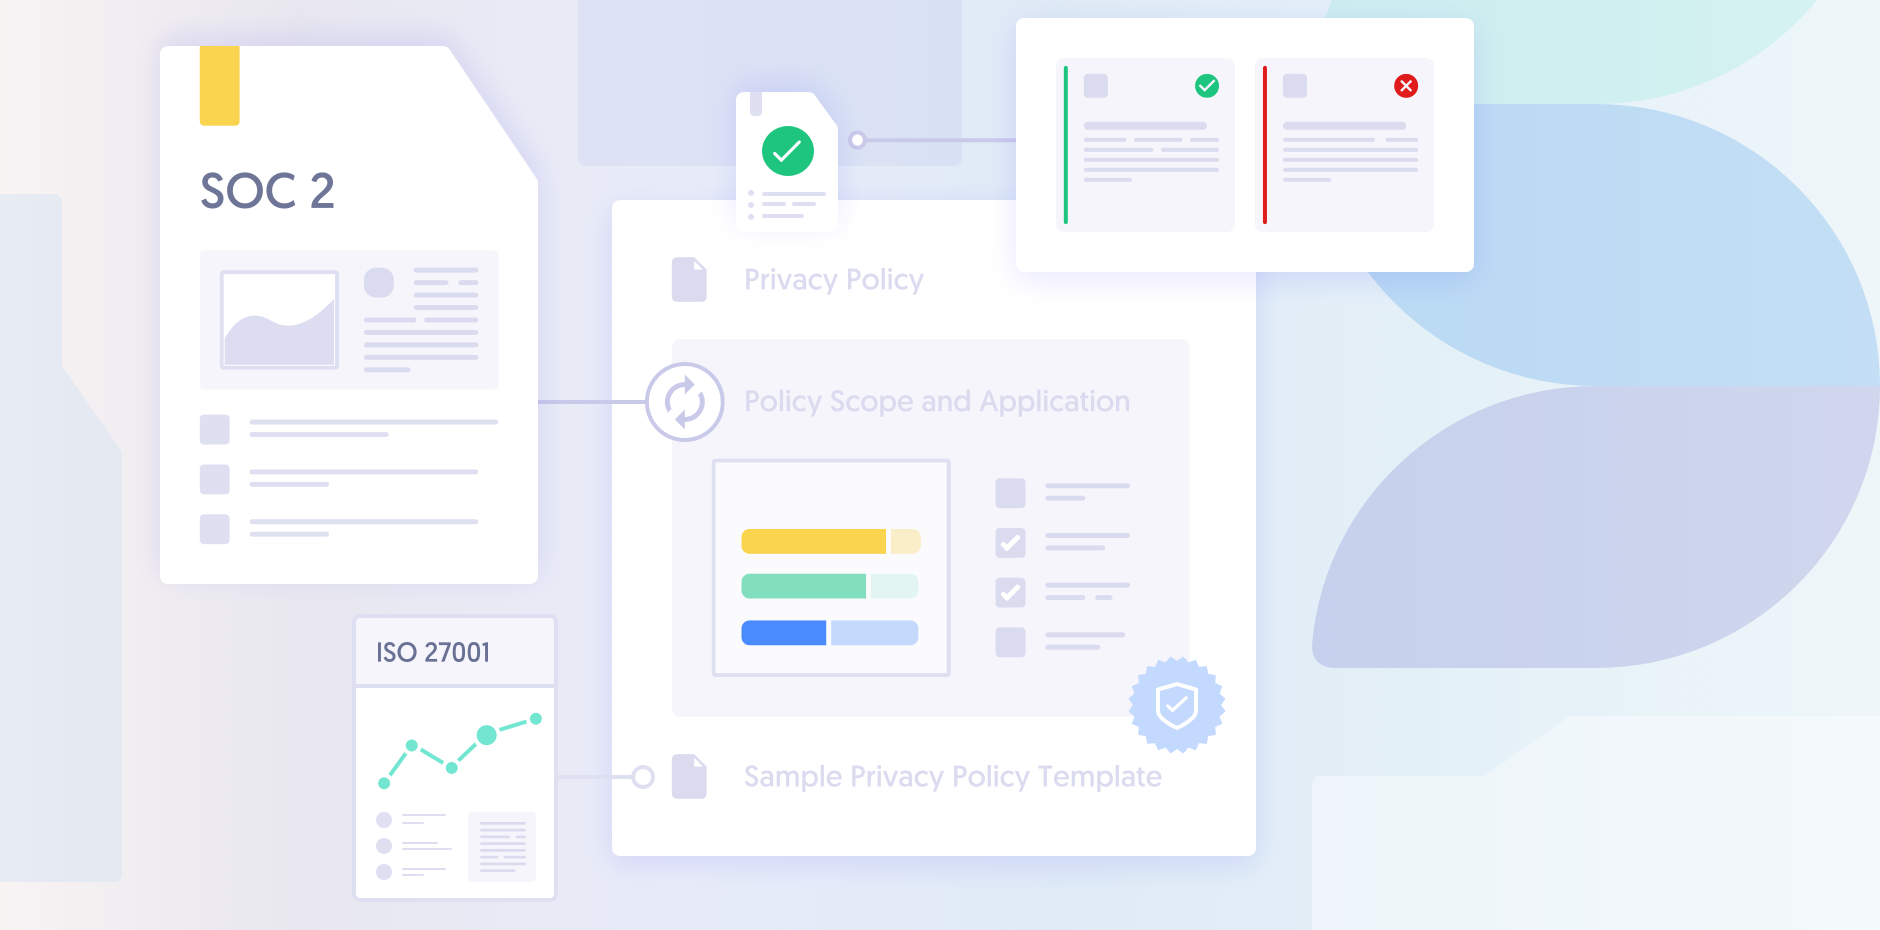 Secureframe raises $4.5M to help businesses speed up their compliance audits – TechCrunch